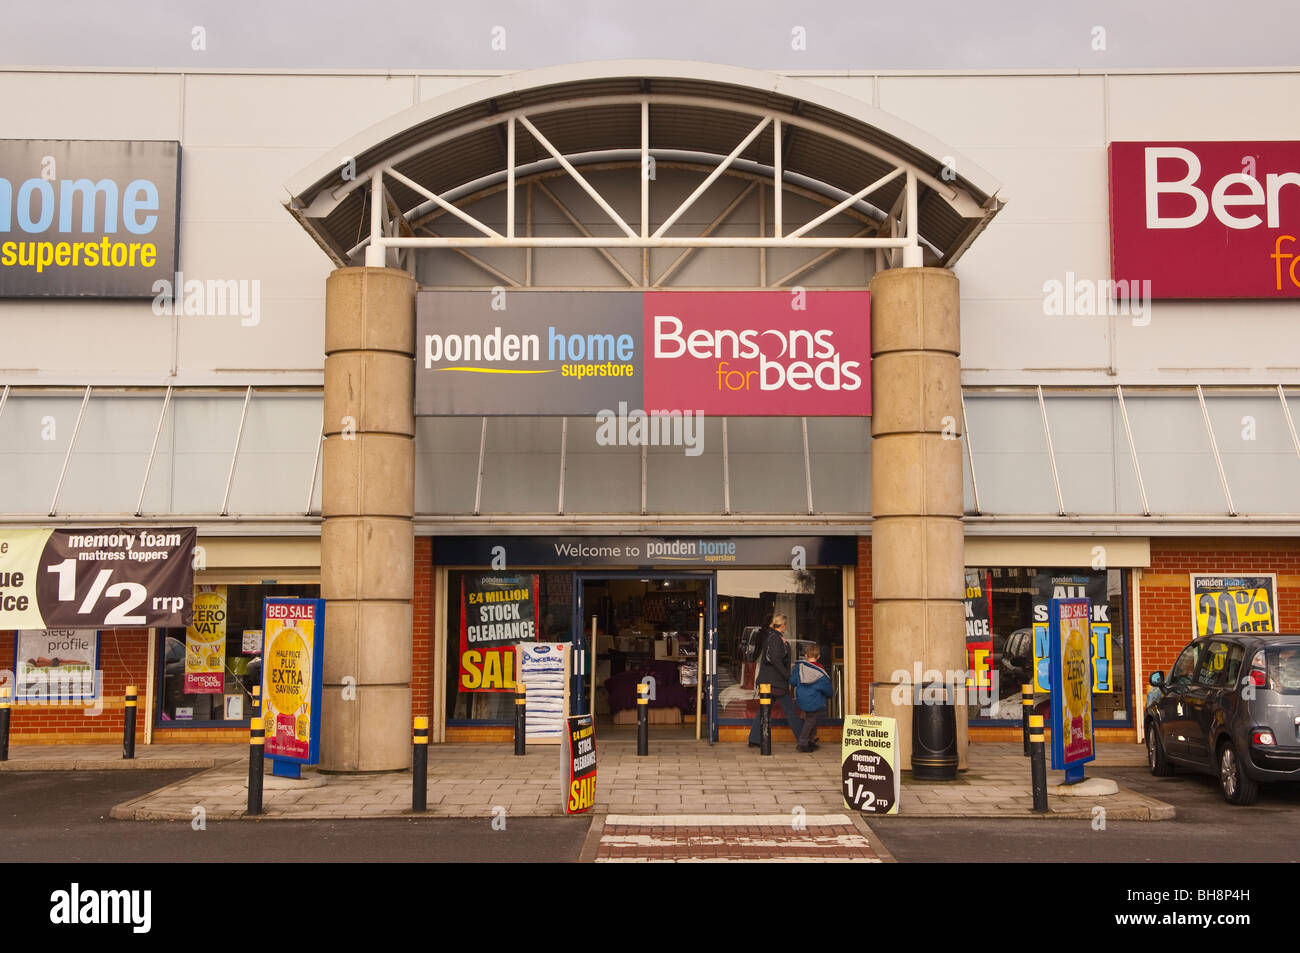 The Ponden Home Superstore And Bensons For Beds Shop Store In Norwich ,  Norfolk , England